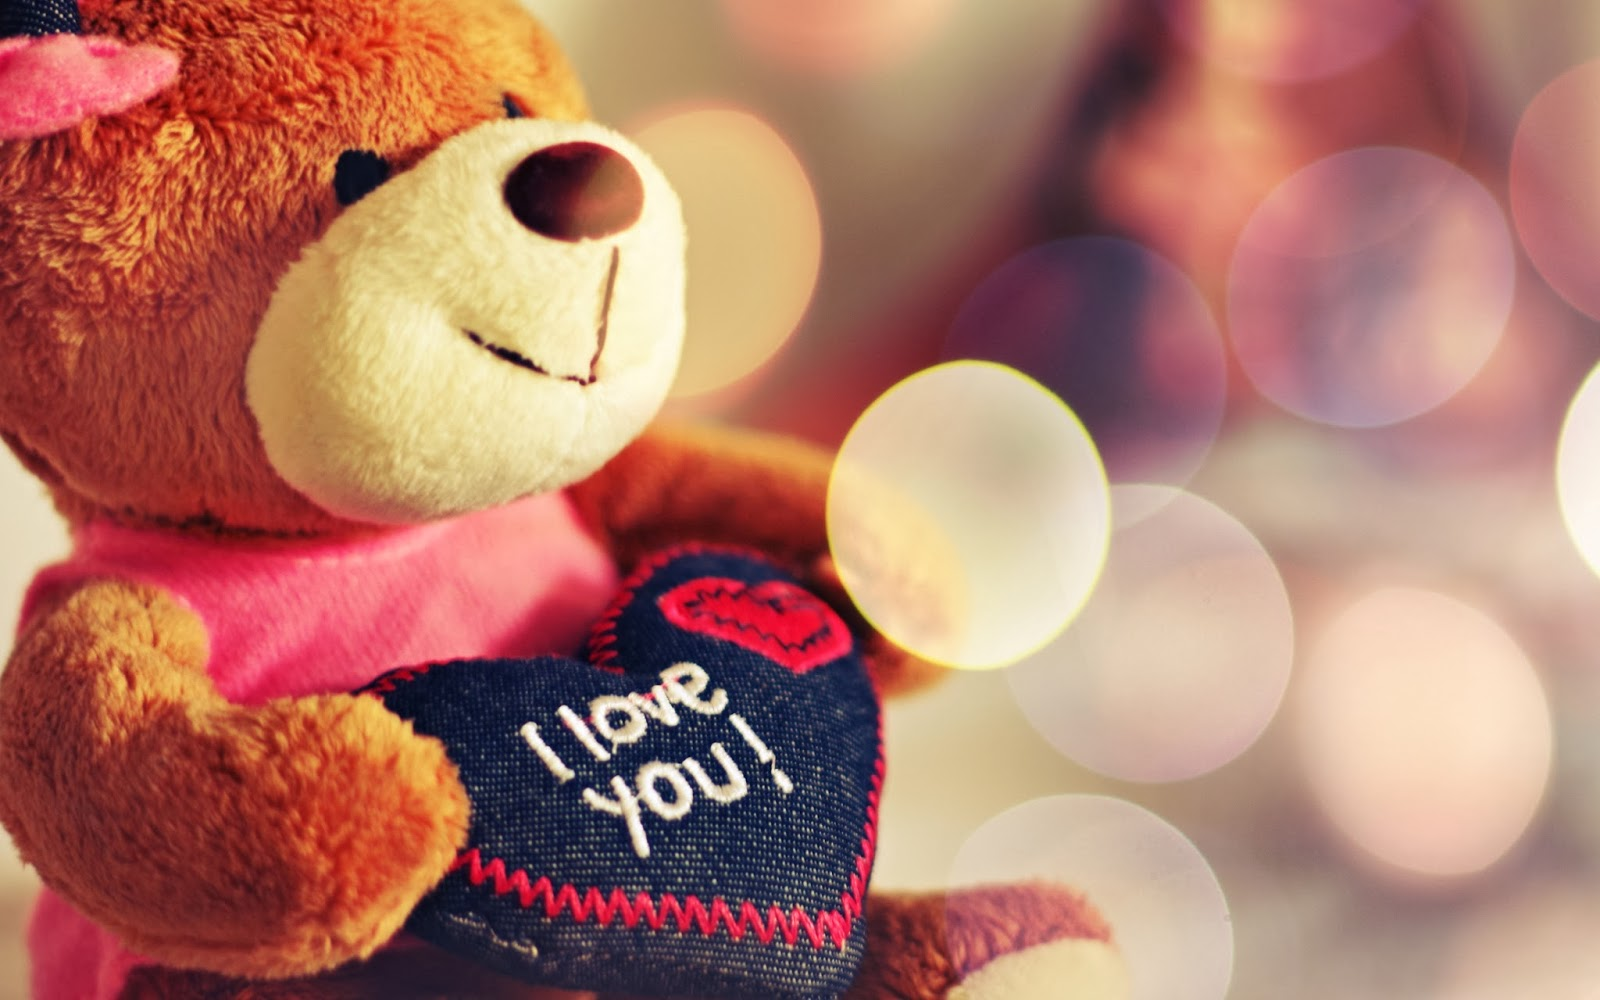 Hot Girl Wallpaper Cute Teddy Bear I Love You Hd Wallpapers